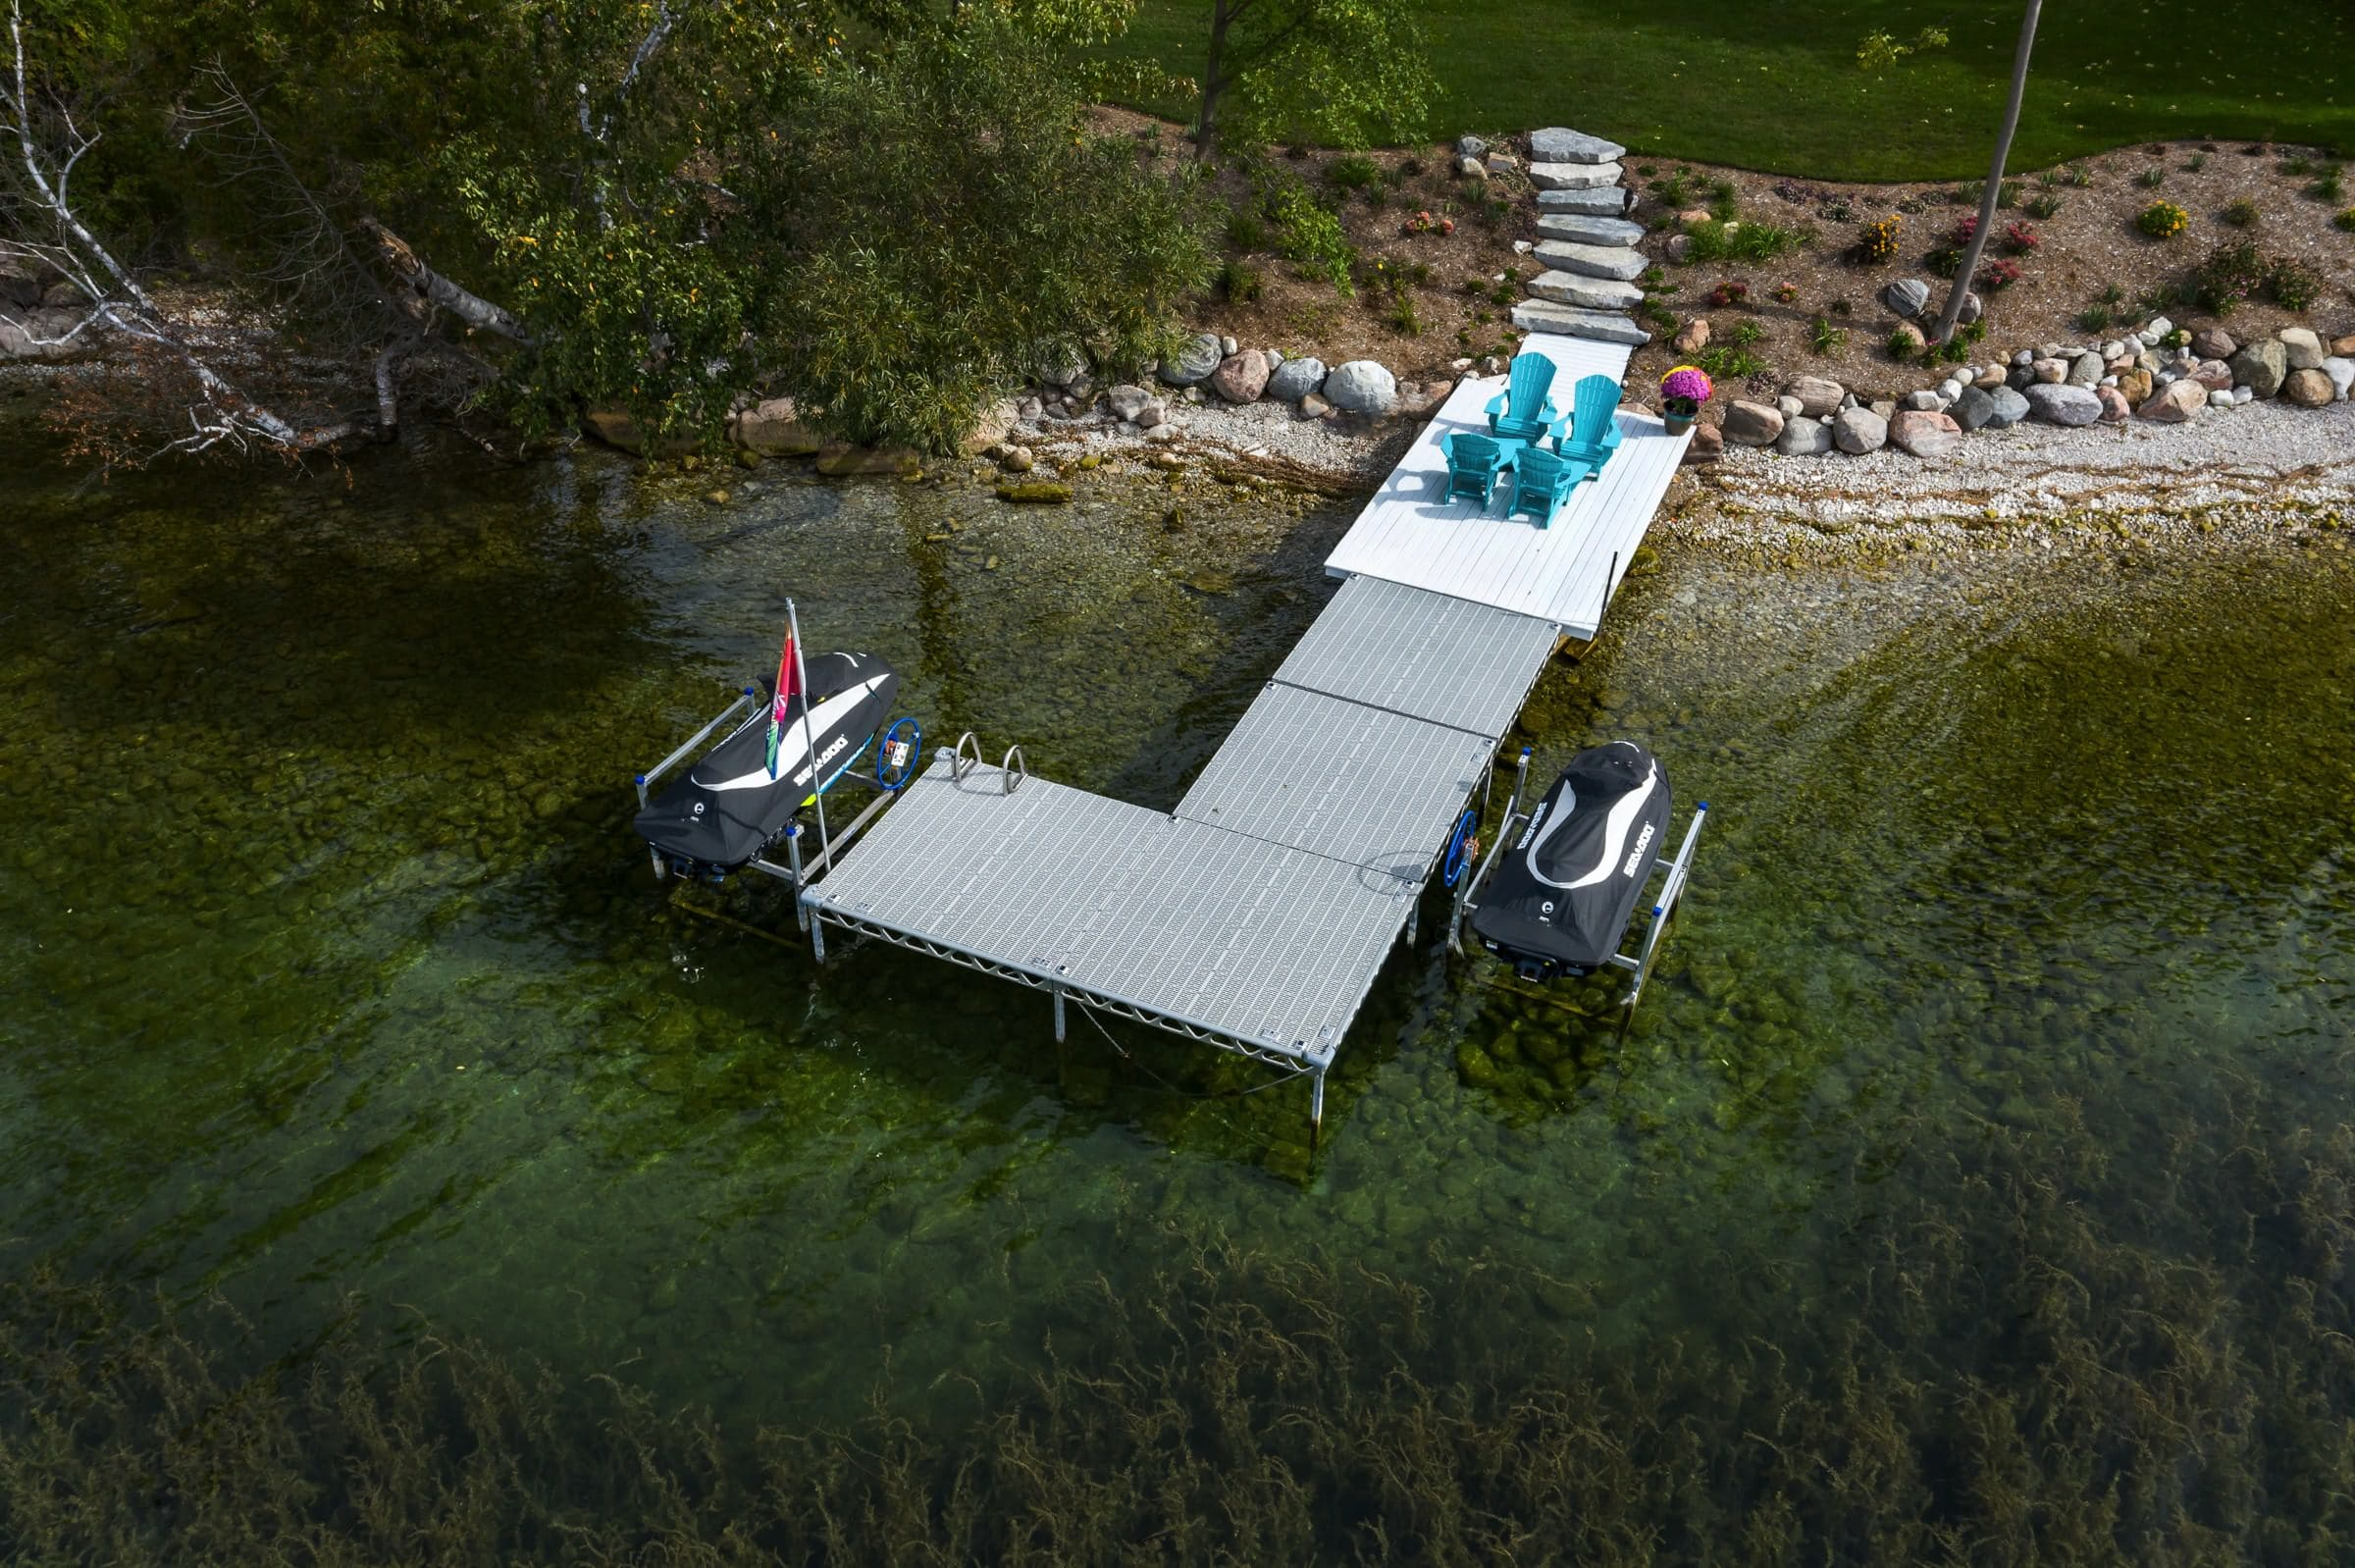 8'x8' Standing Dock Kits with 1200lbs PWC Lifts